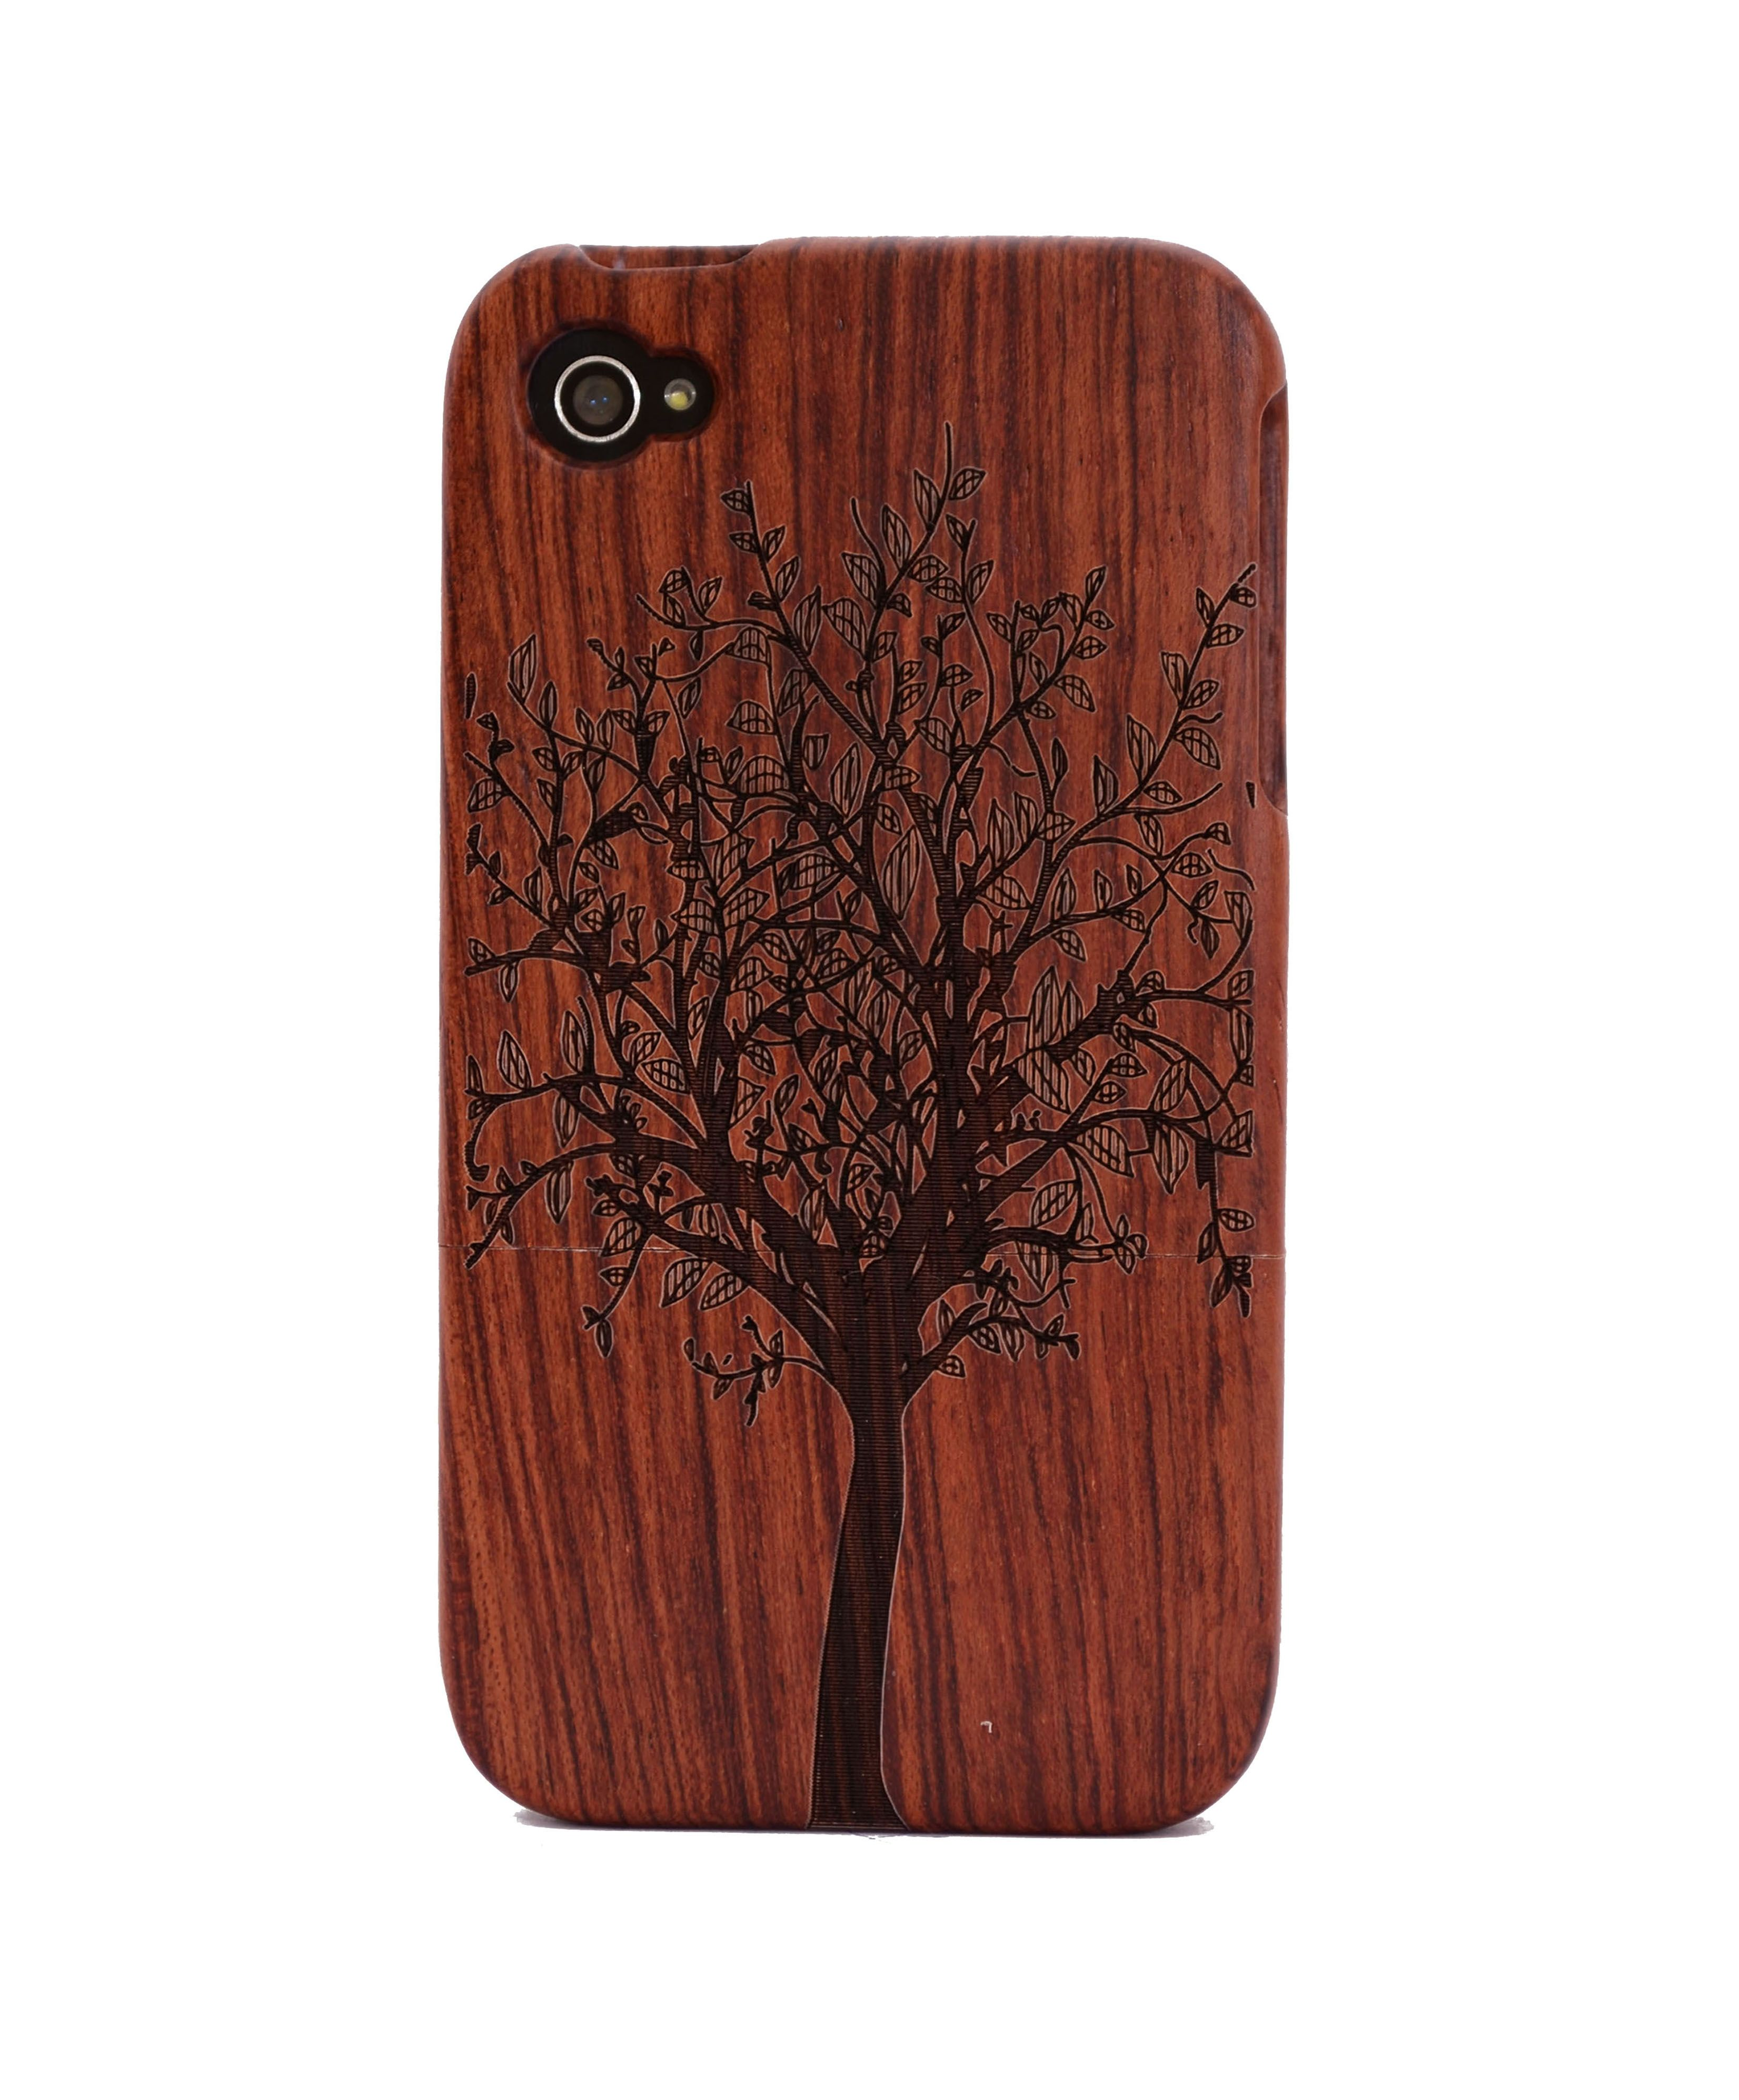 Tree Engraved Rosewood iPhone4/4s Wood Case